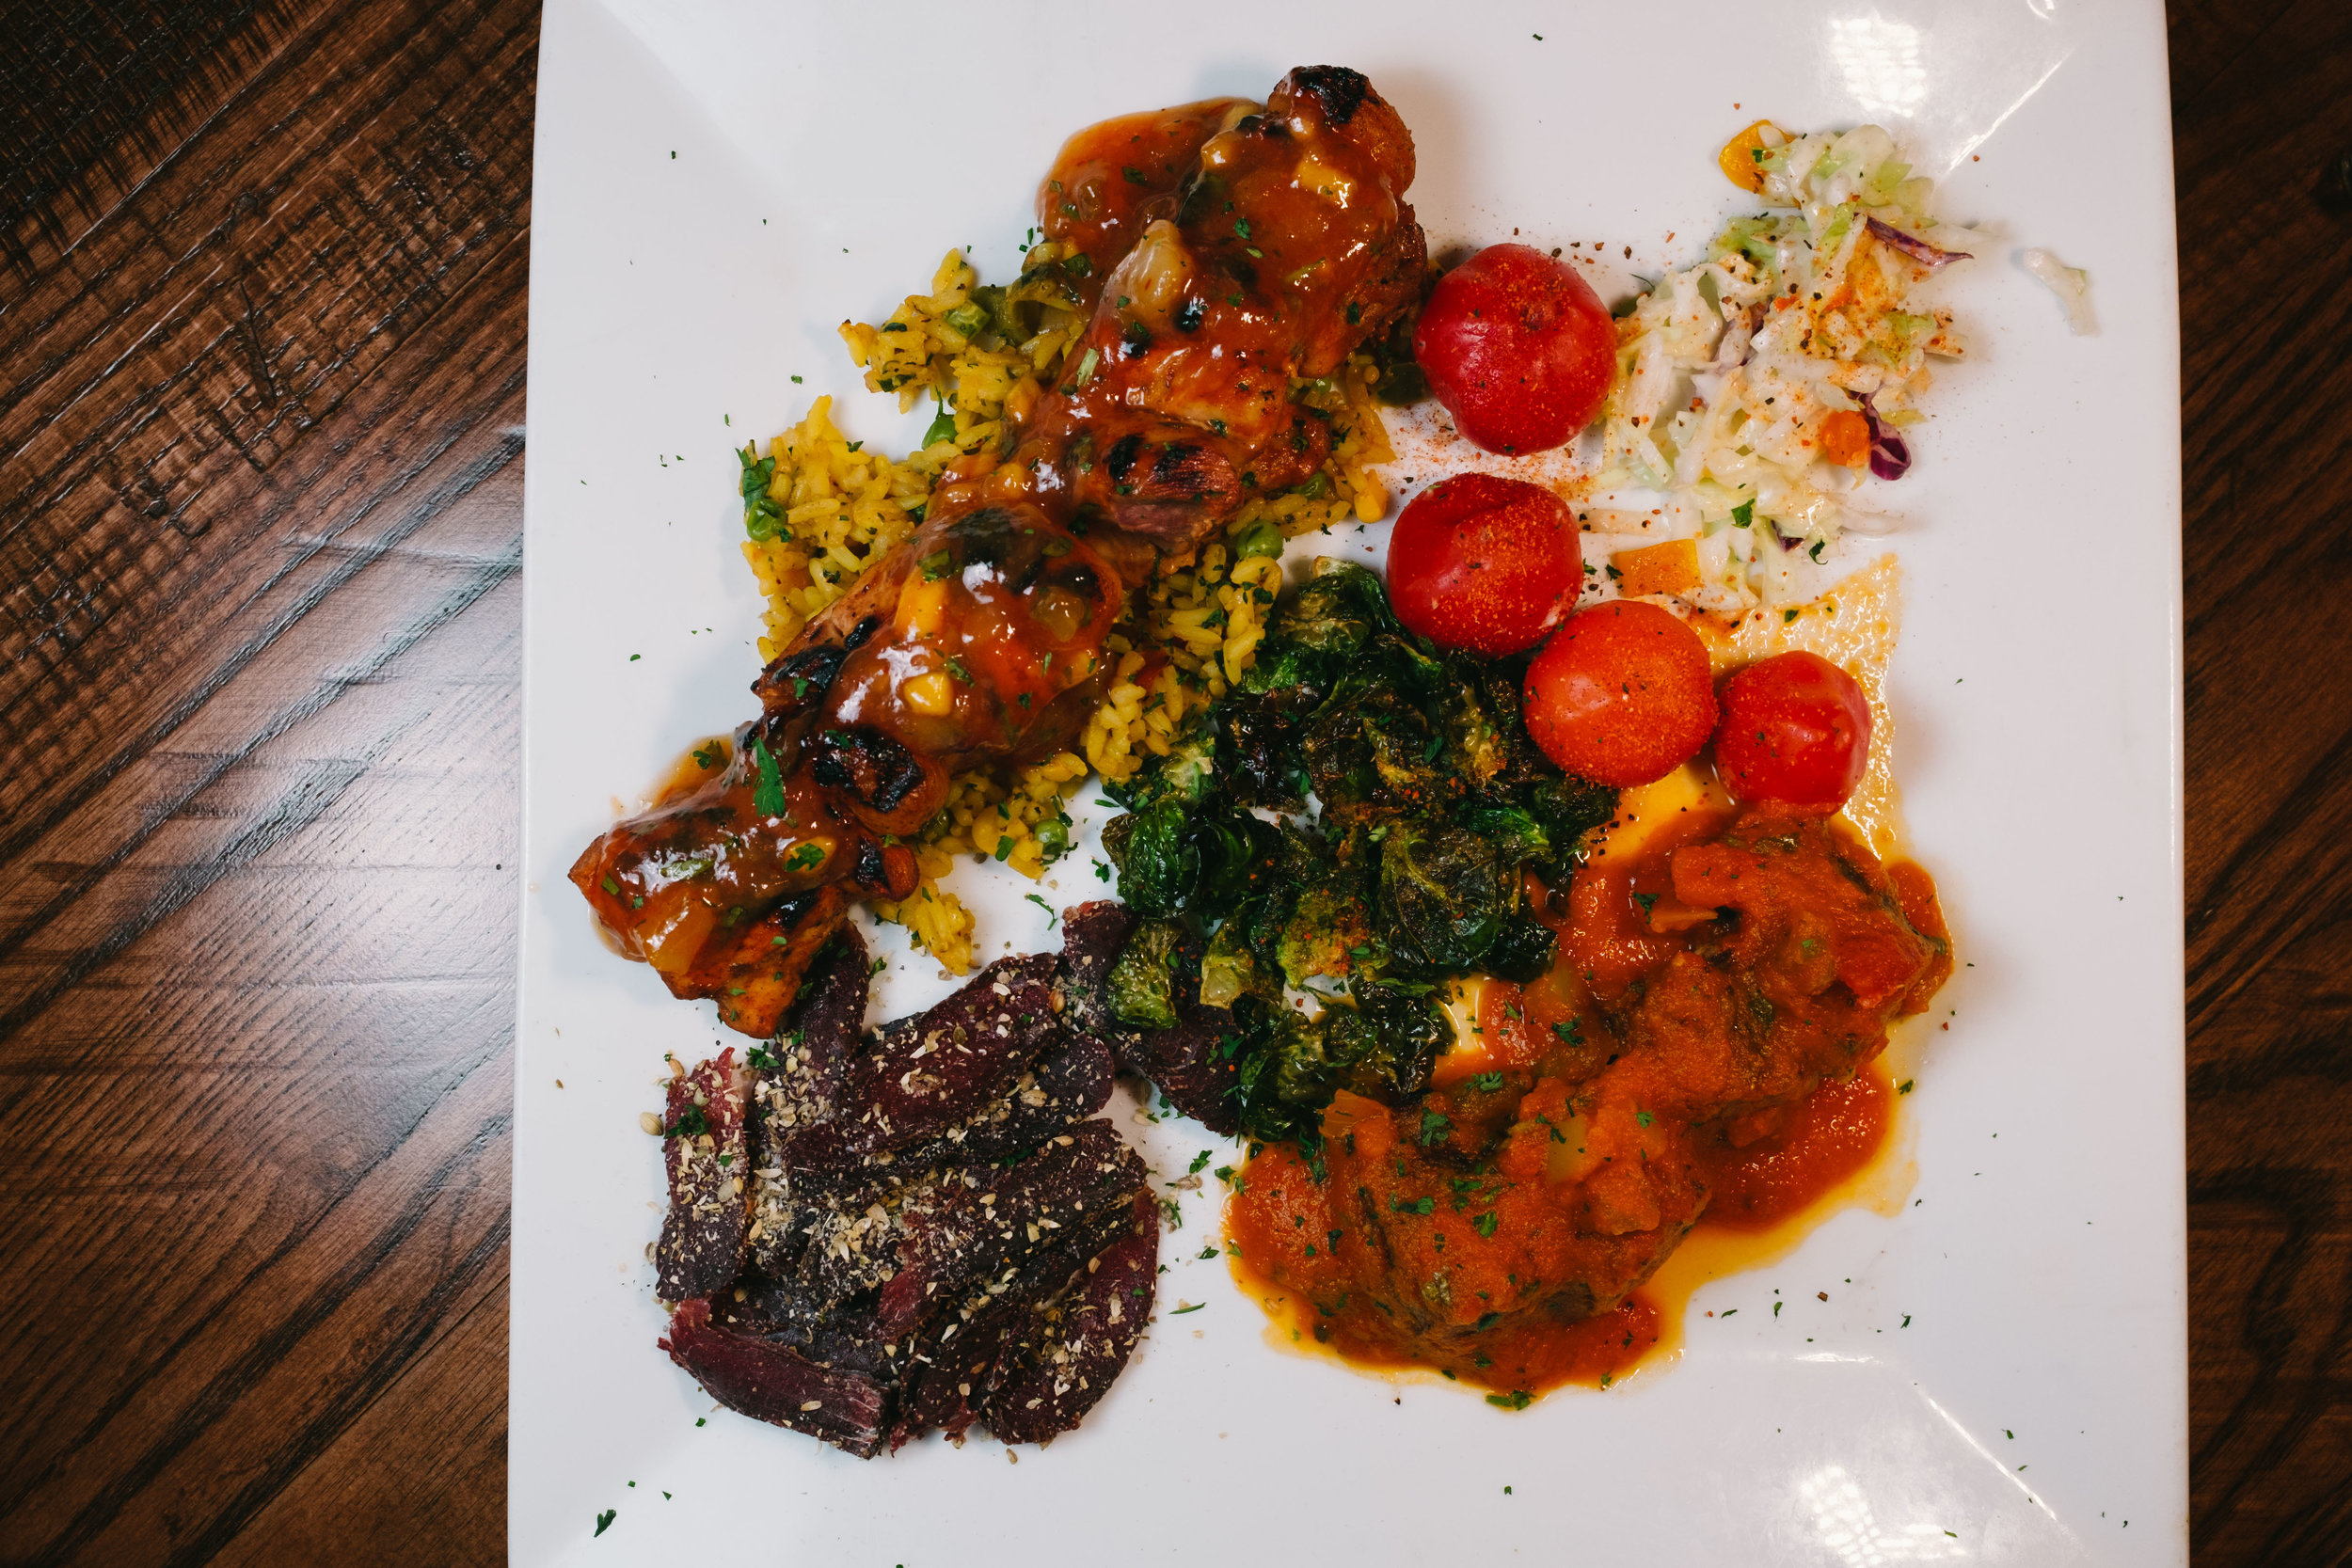 If you can't make up your mind, try the sampler which comes with Biltong, Boerewors, Sosatie, and Peppadews